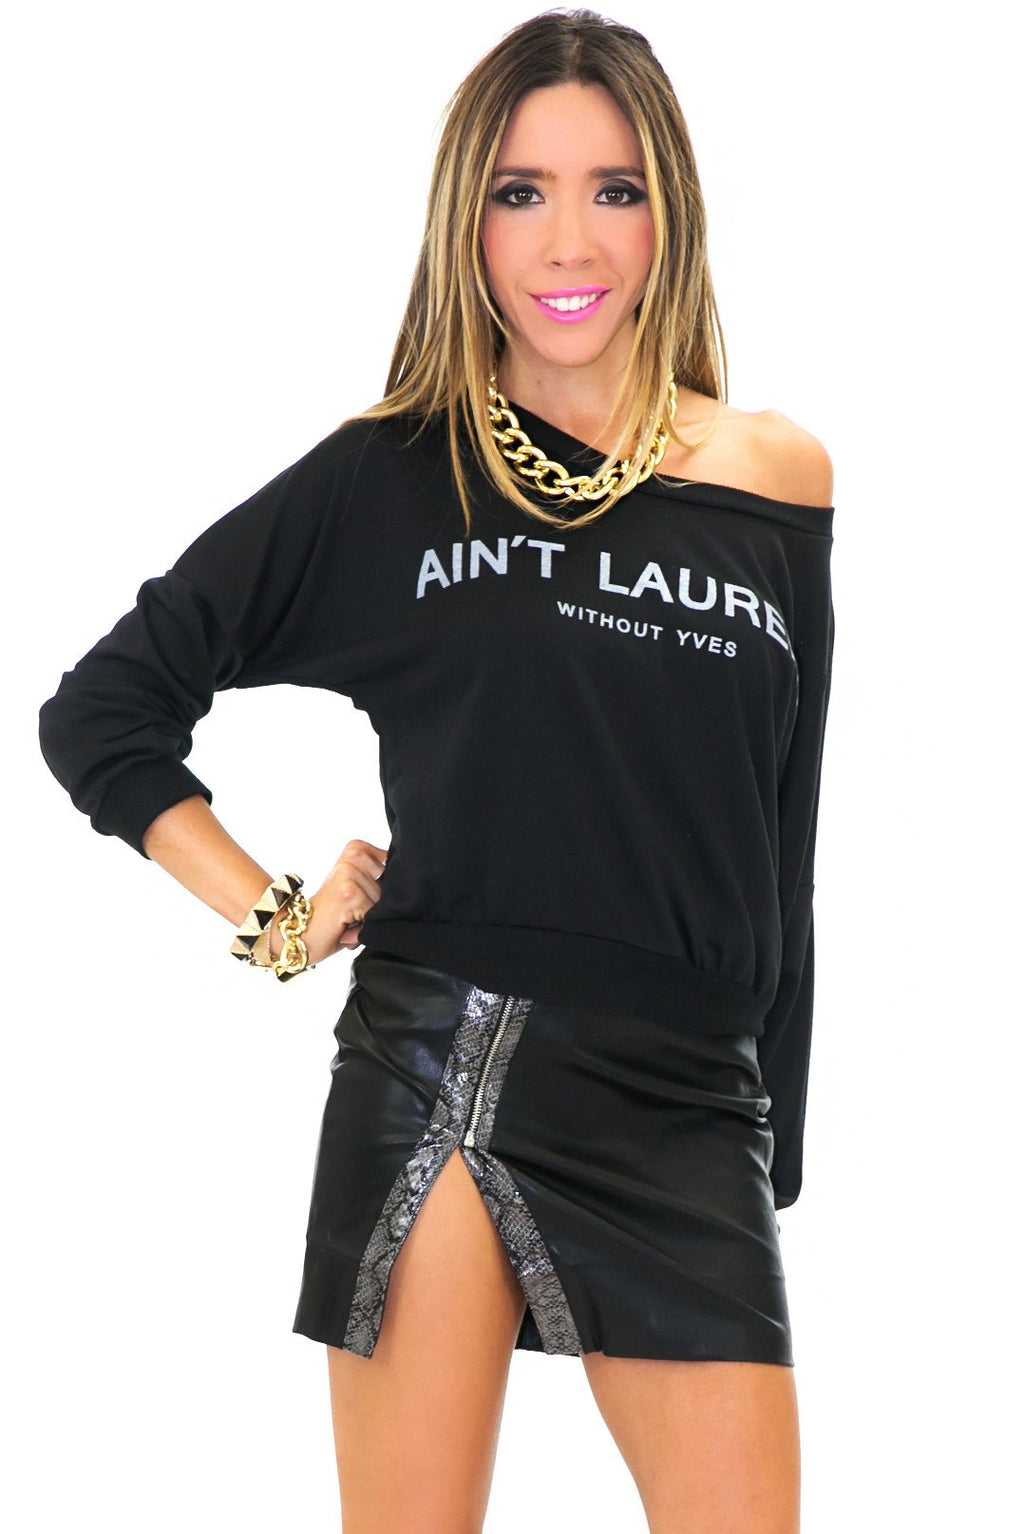 AIN'T LAURENT SWEATER TOP - Black - Haute & Rebellious